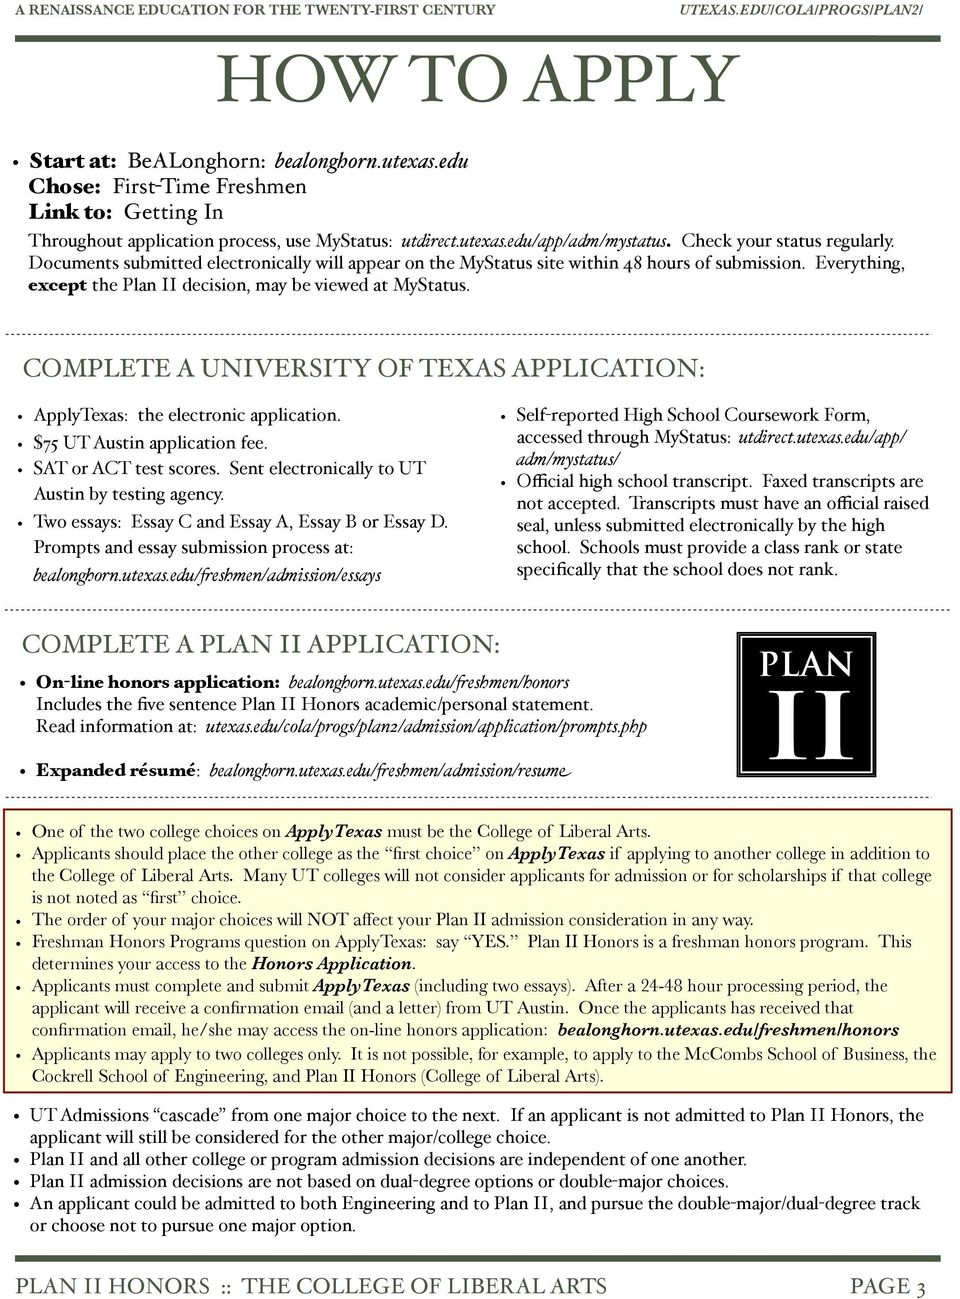 011 Page New Apply Texas Essays Topics Archaicawful Essay Application Fall 2018 Prompt C Example Full